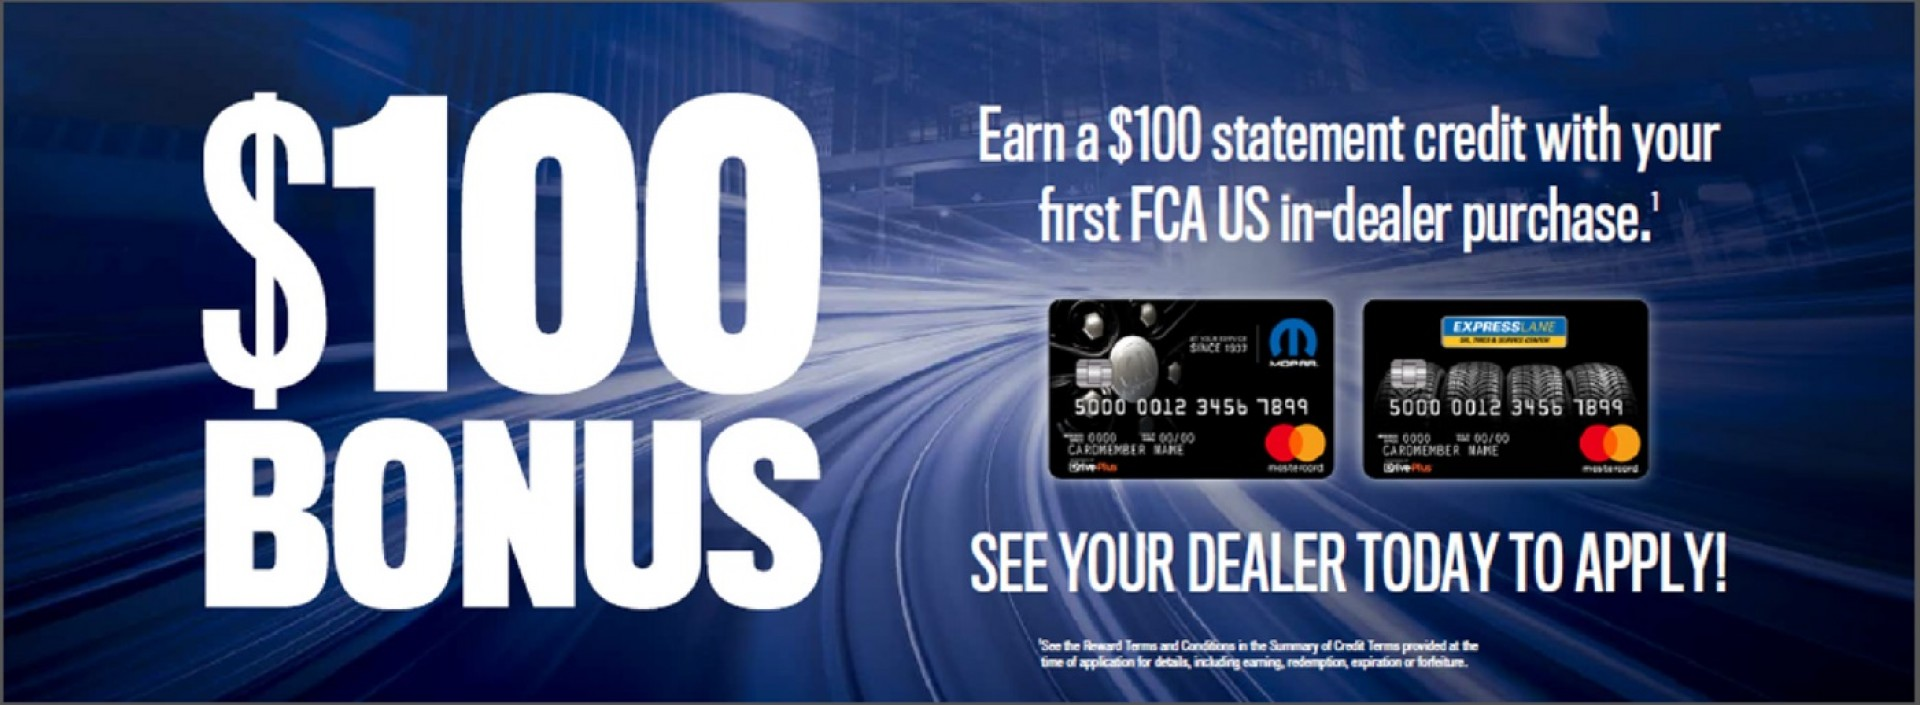 100 Bonus FCA US in dealer purchase